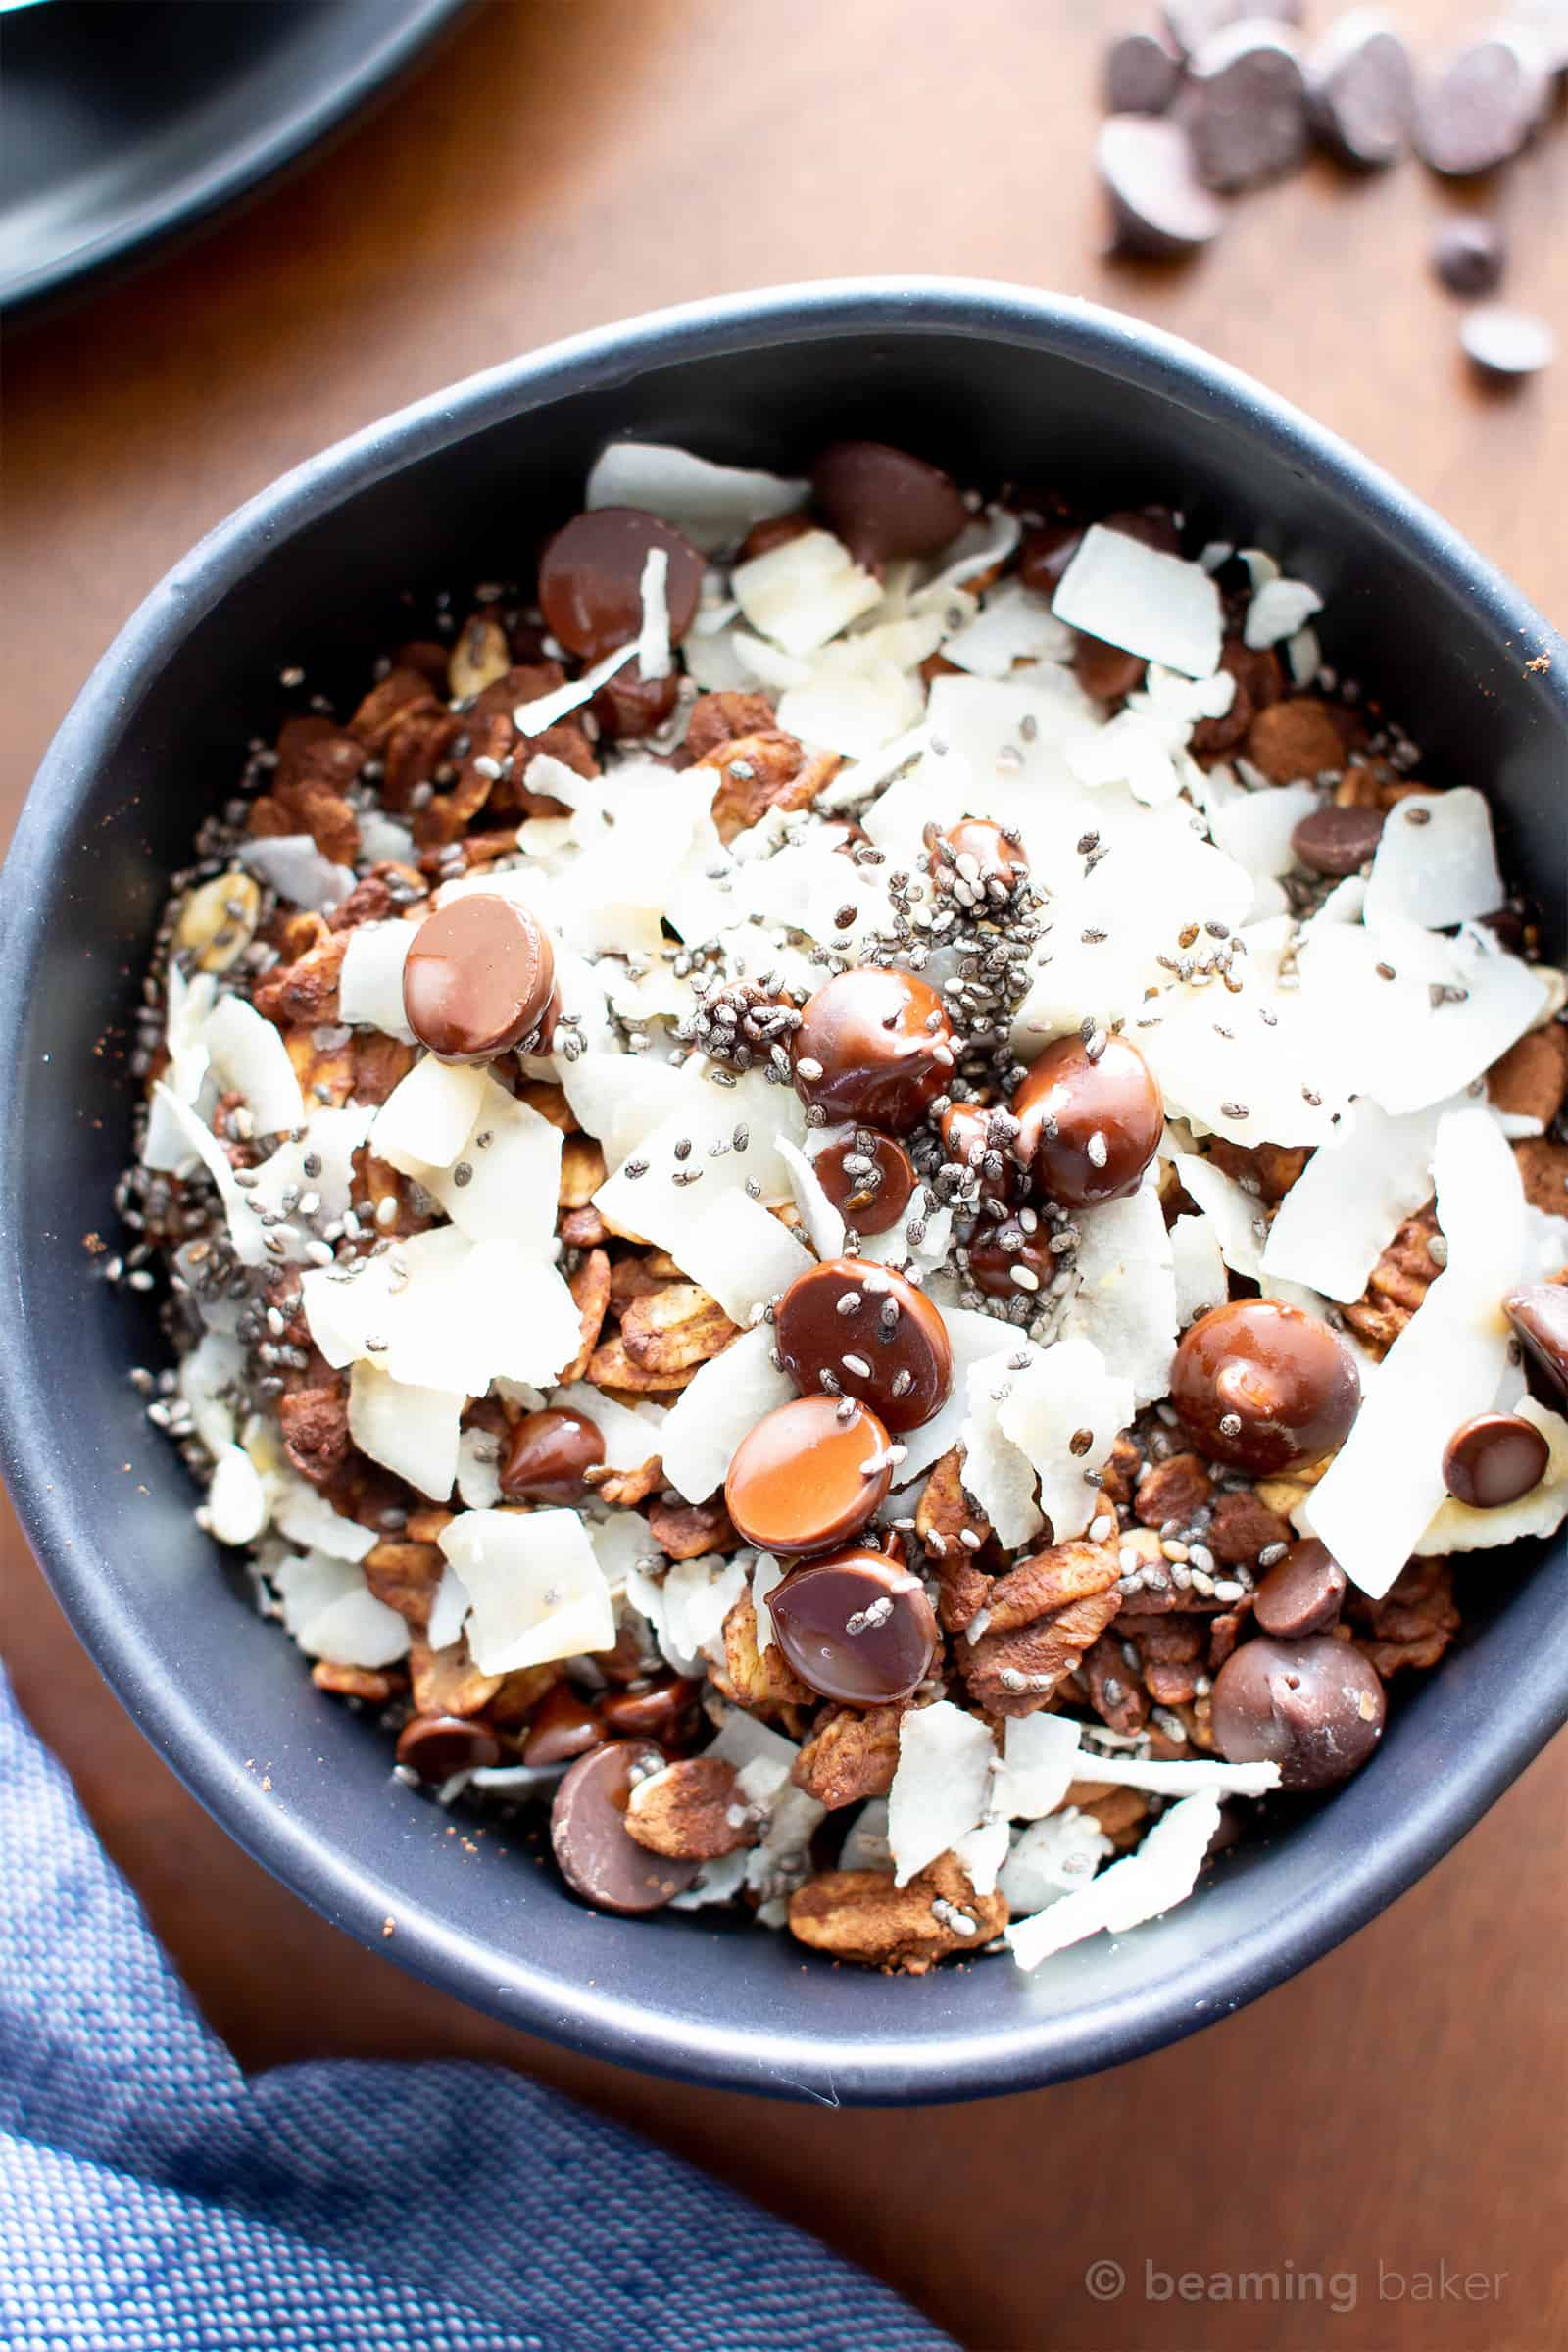 Midnight Mocha Bowls (V, GF): the perfect morning treat—a nourishing bowl of dark chocolate, coffee and superfood infused oatmeal to kick off a fantastic morning! #Vegan #GlutenFree #DairyFree #Breakfast | Recipe at BeamingBaker.com